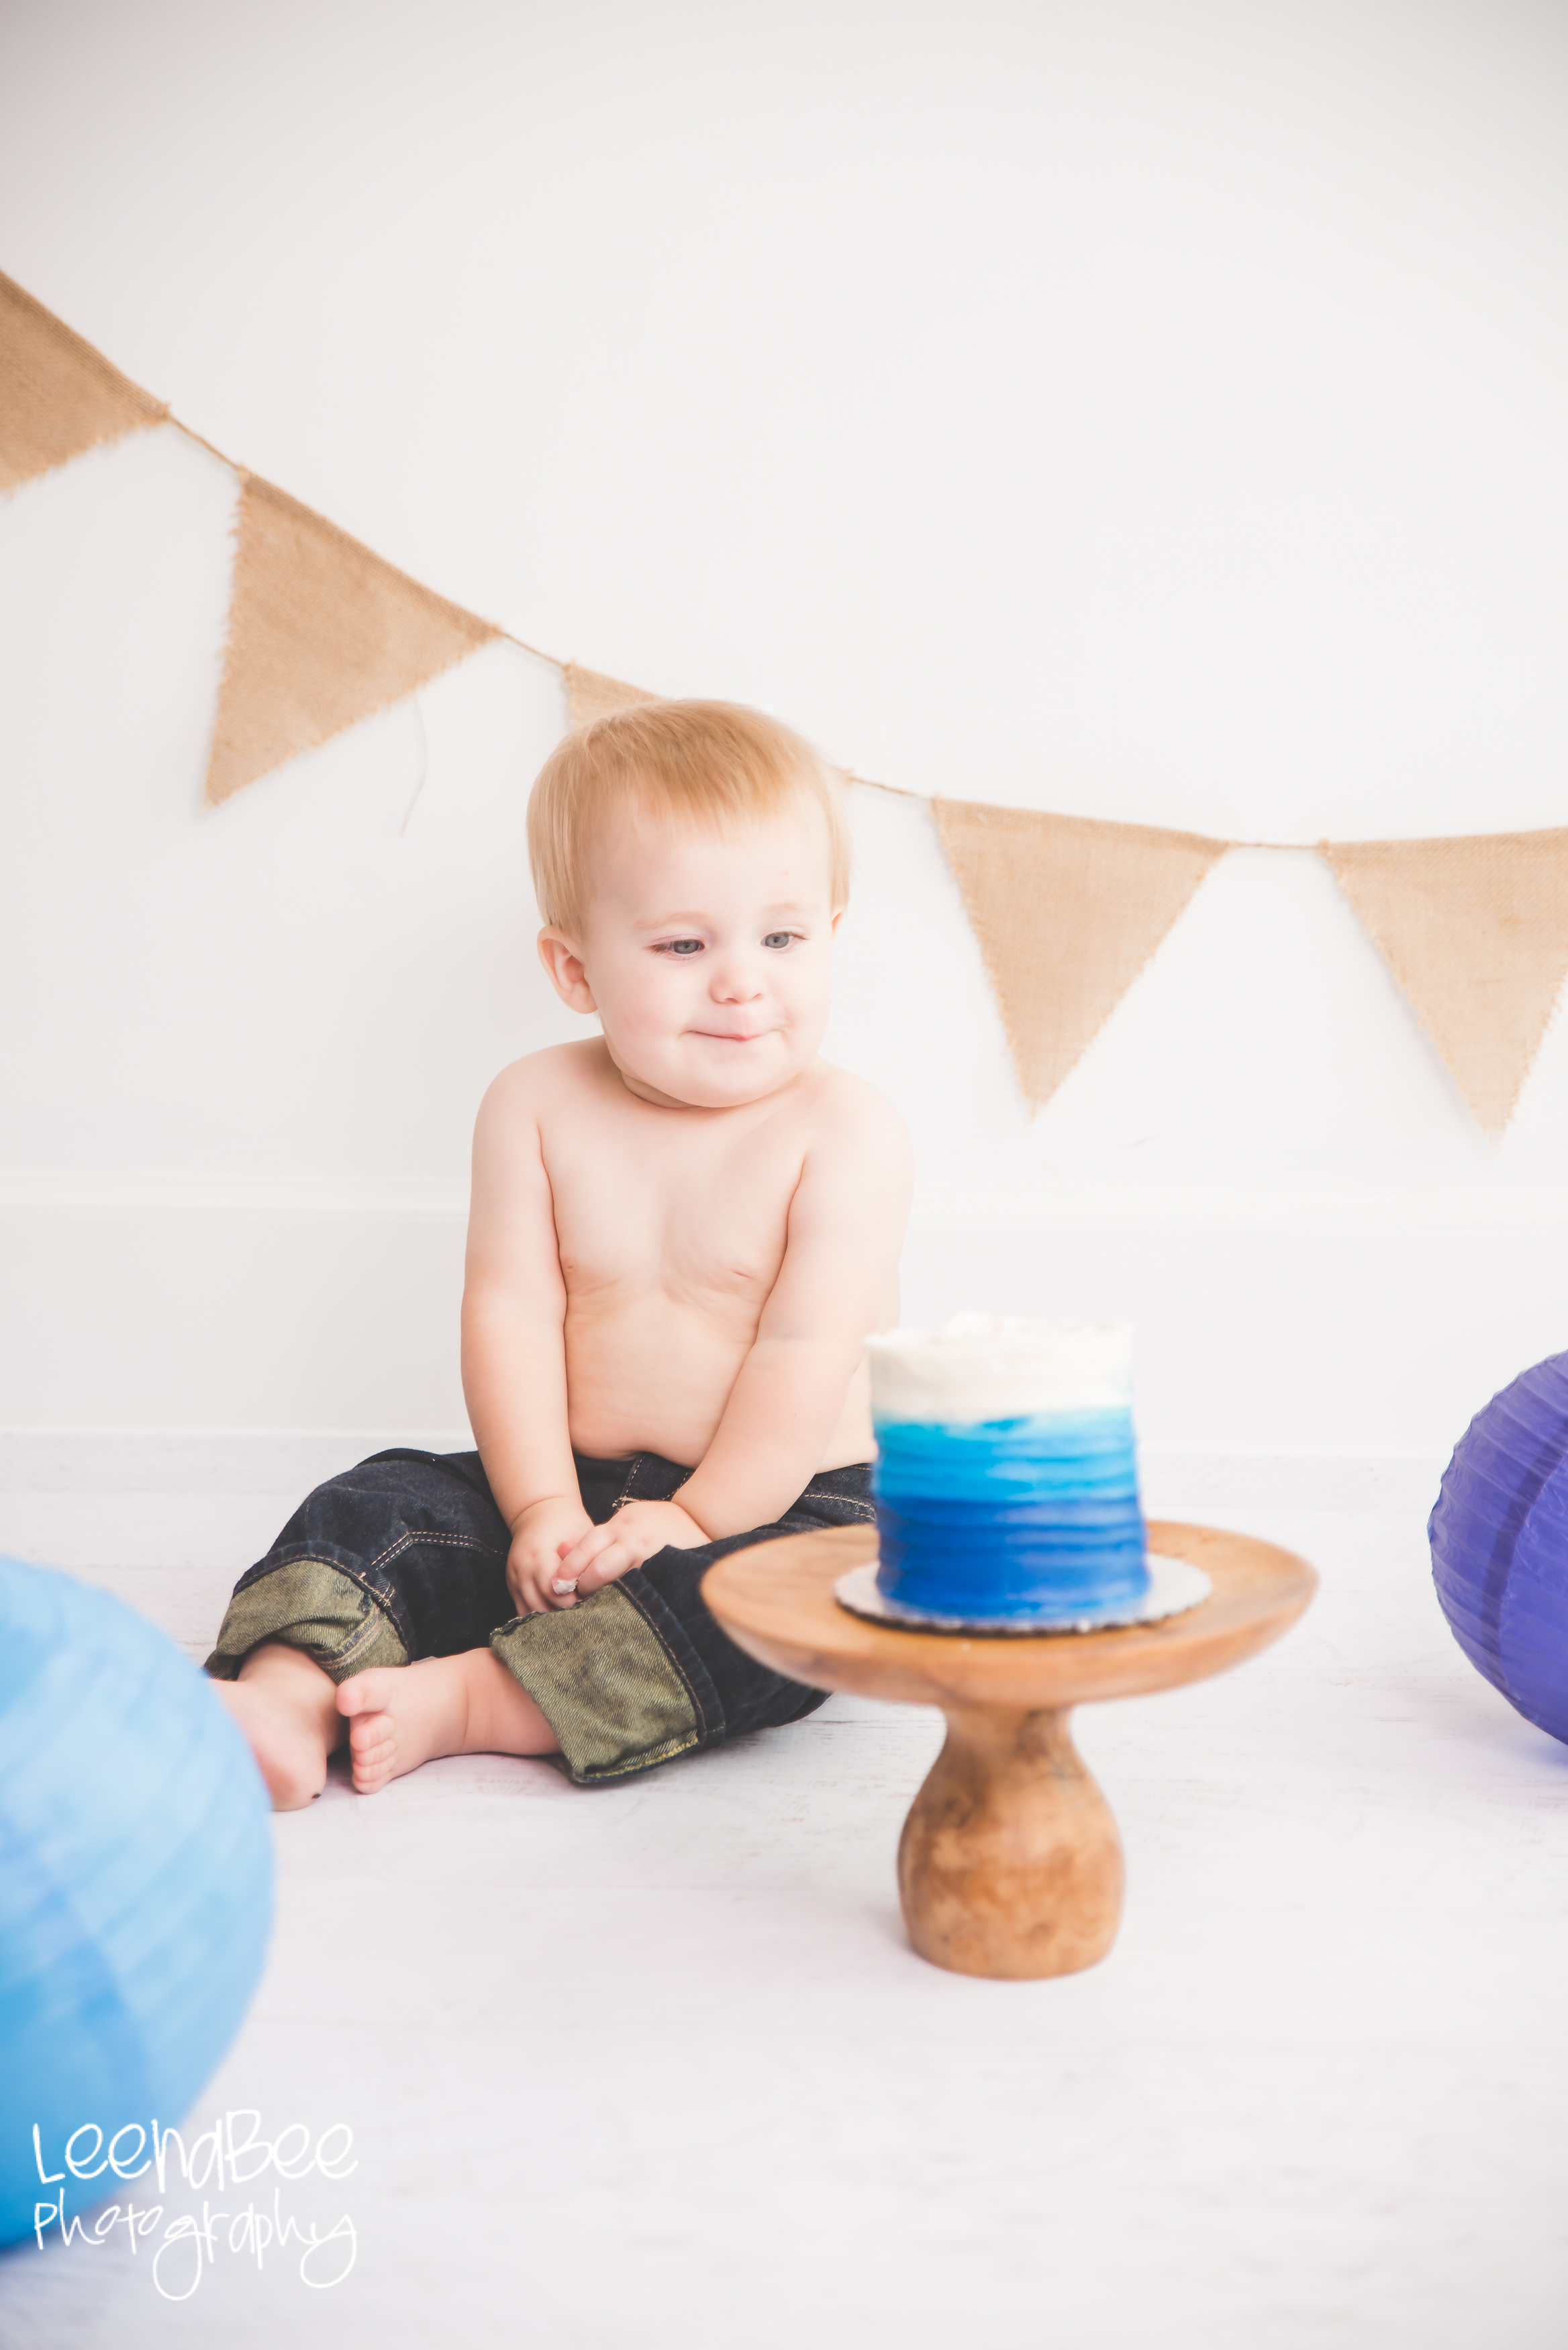 dublin-cake-smash-first-birthday-photography-27